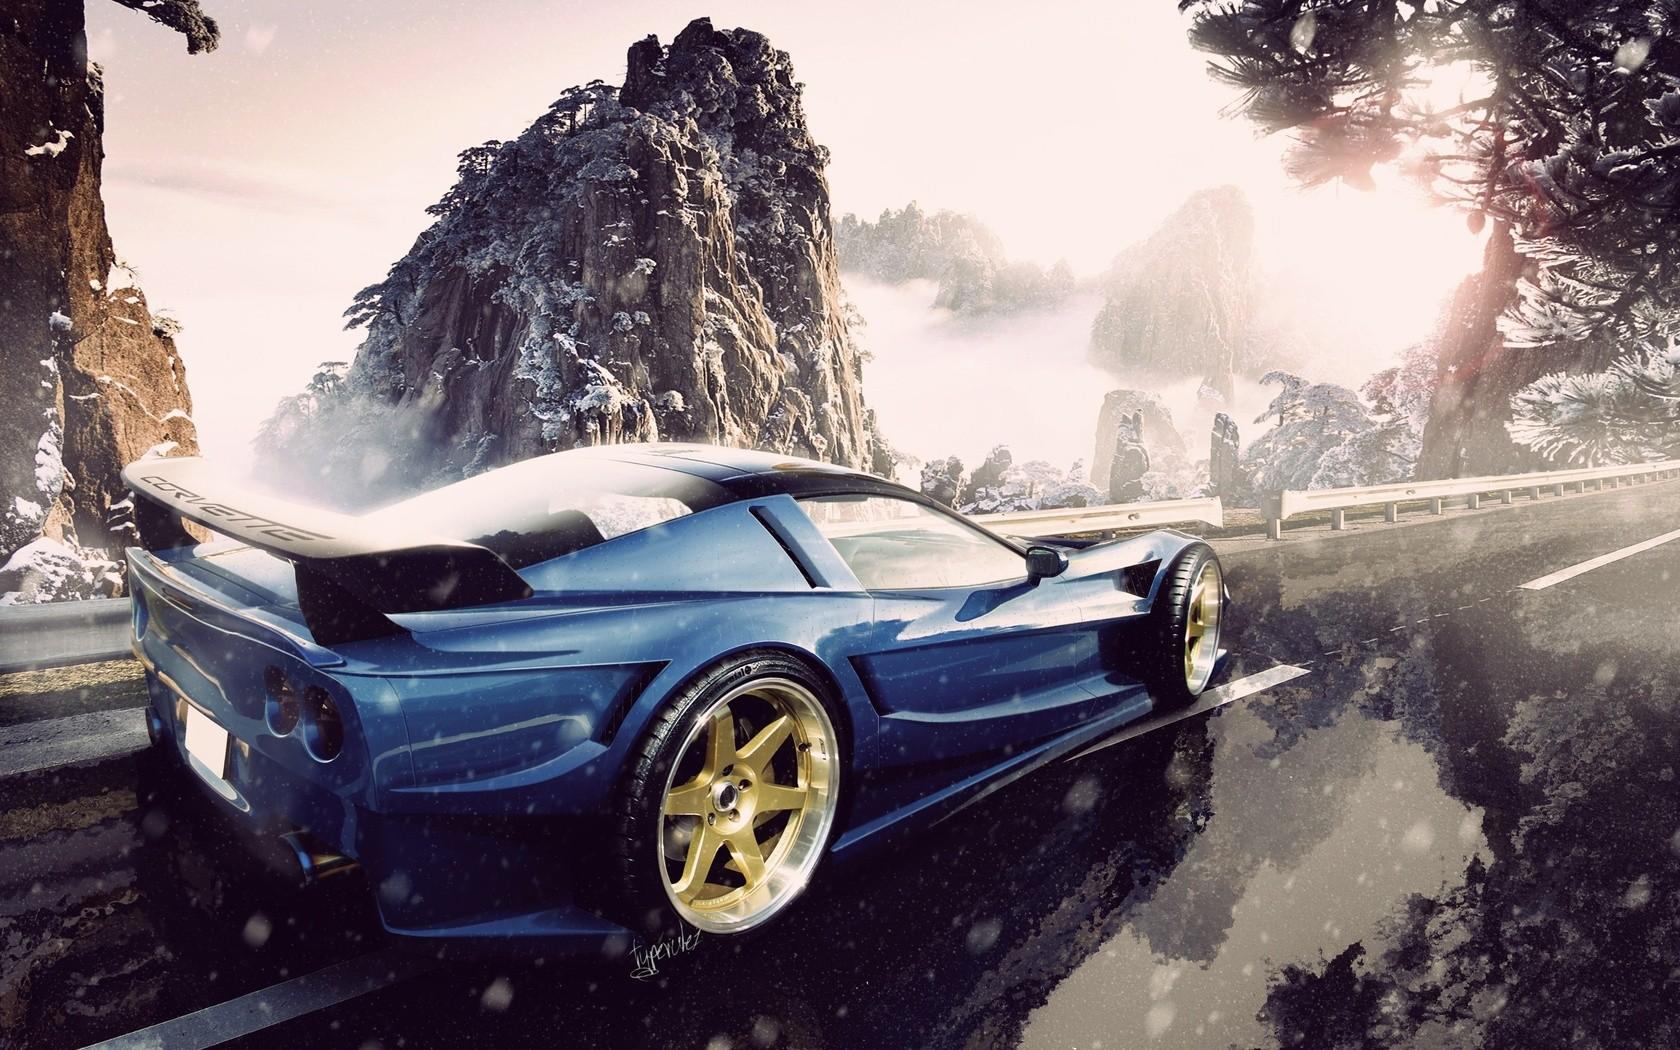 Car Rims Snow Mountain Road Blue Cars Chevrolet